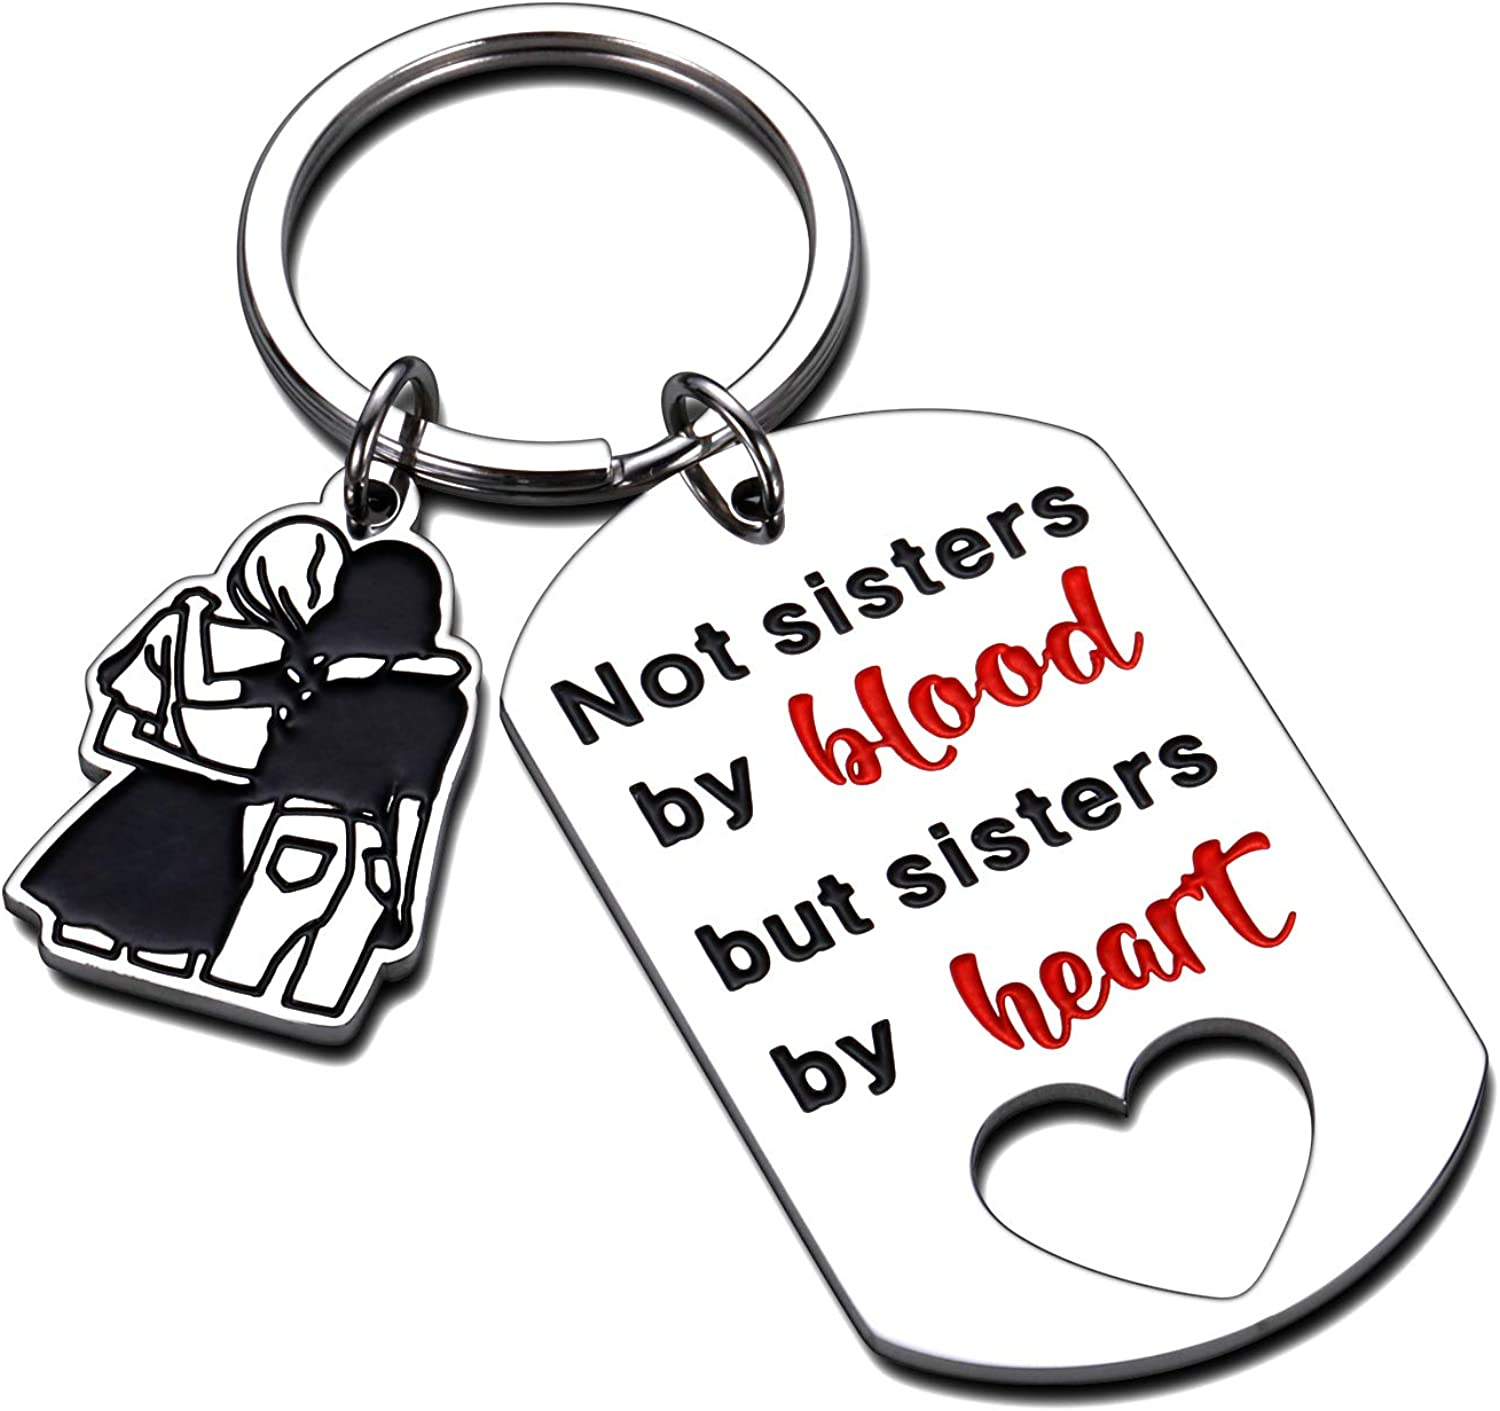 Friendship Gifts for Women Best Friends Keychain from Besties Sisters Girls Females Not Sisters by Blood But Sisters by Heart Key Ring Birthday Graduation Christmas Thanksgiving Present for Teens